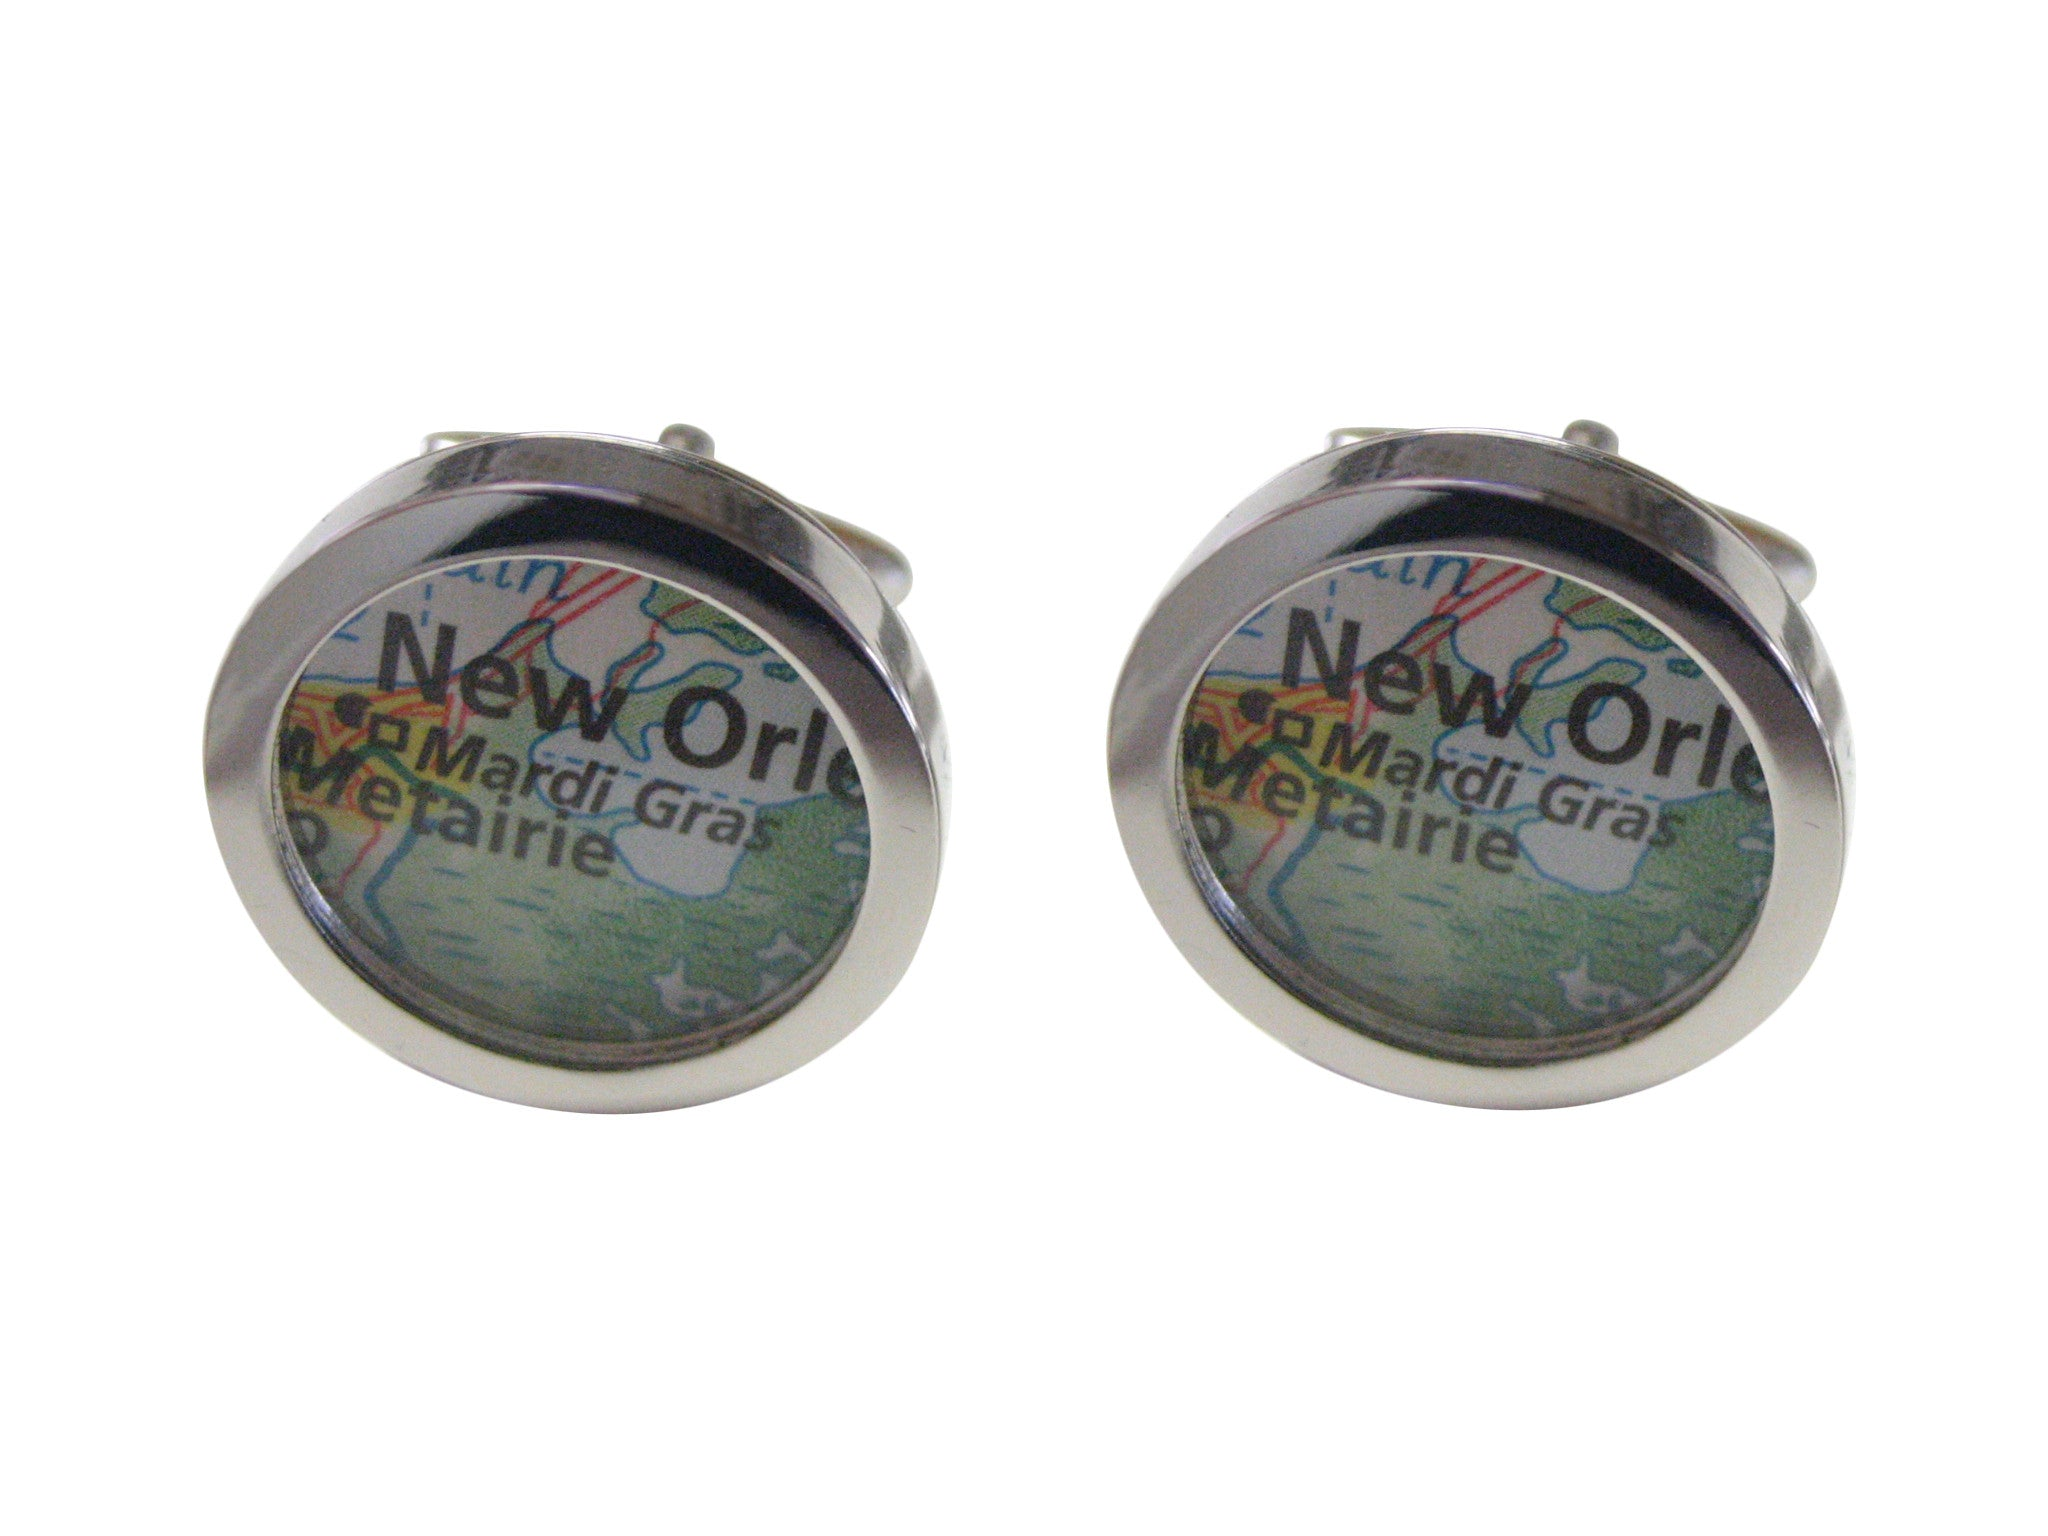 Mardi Gras Festival Map Cufflinks